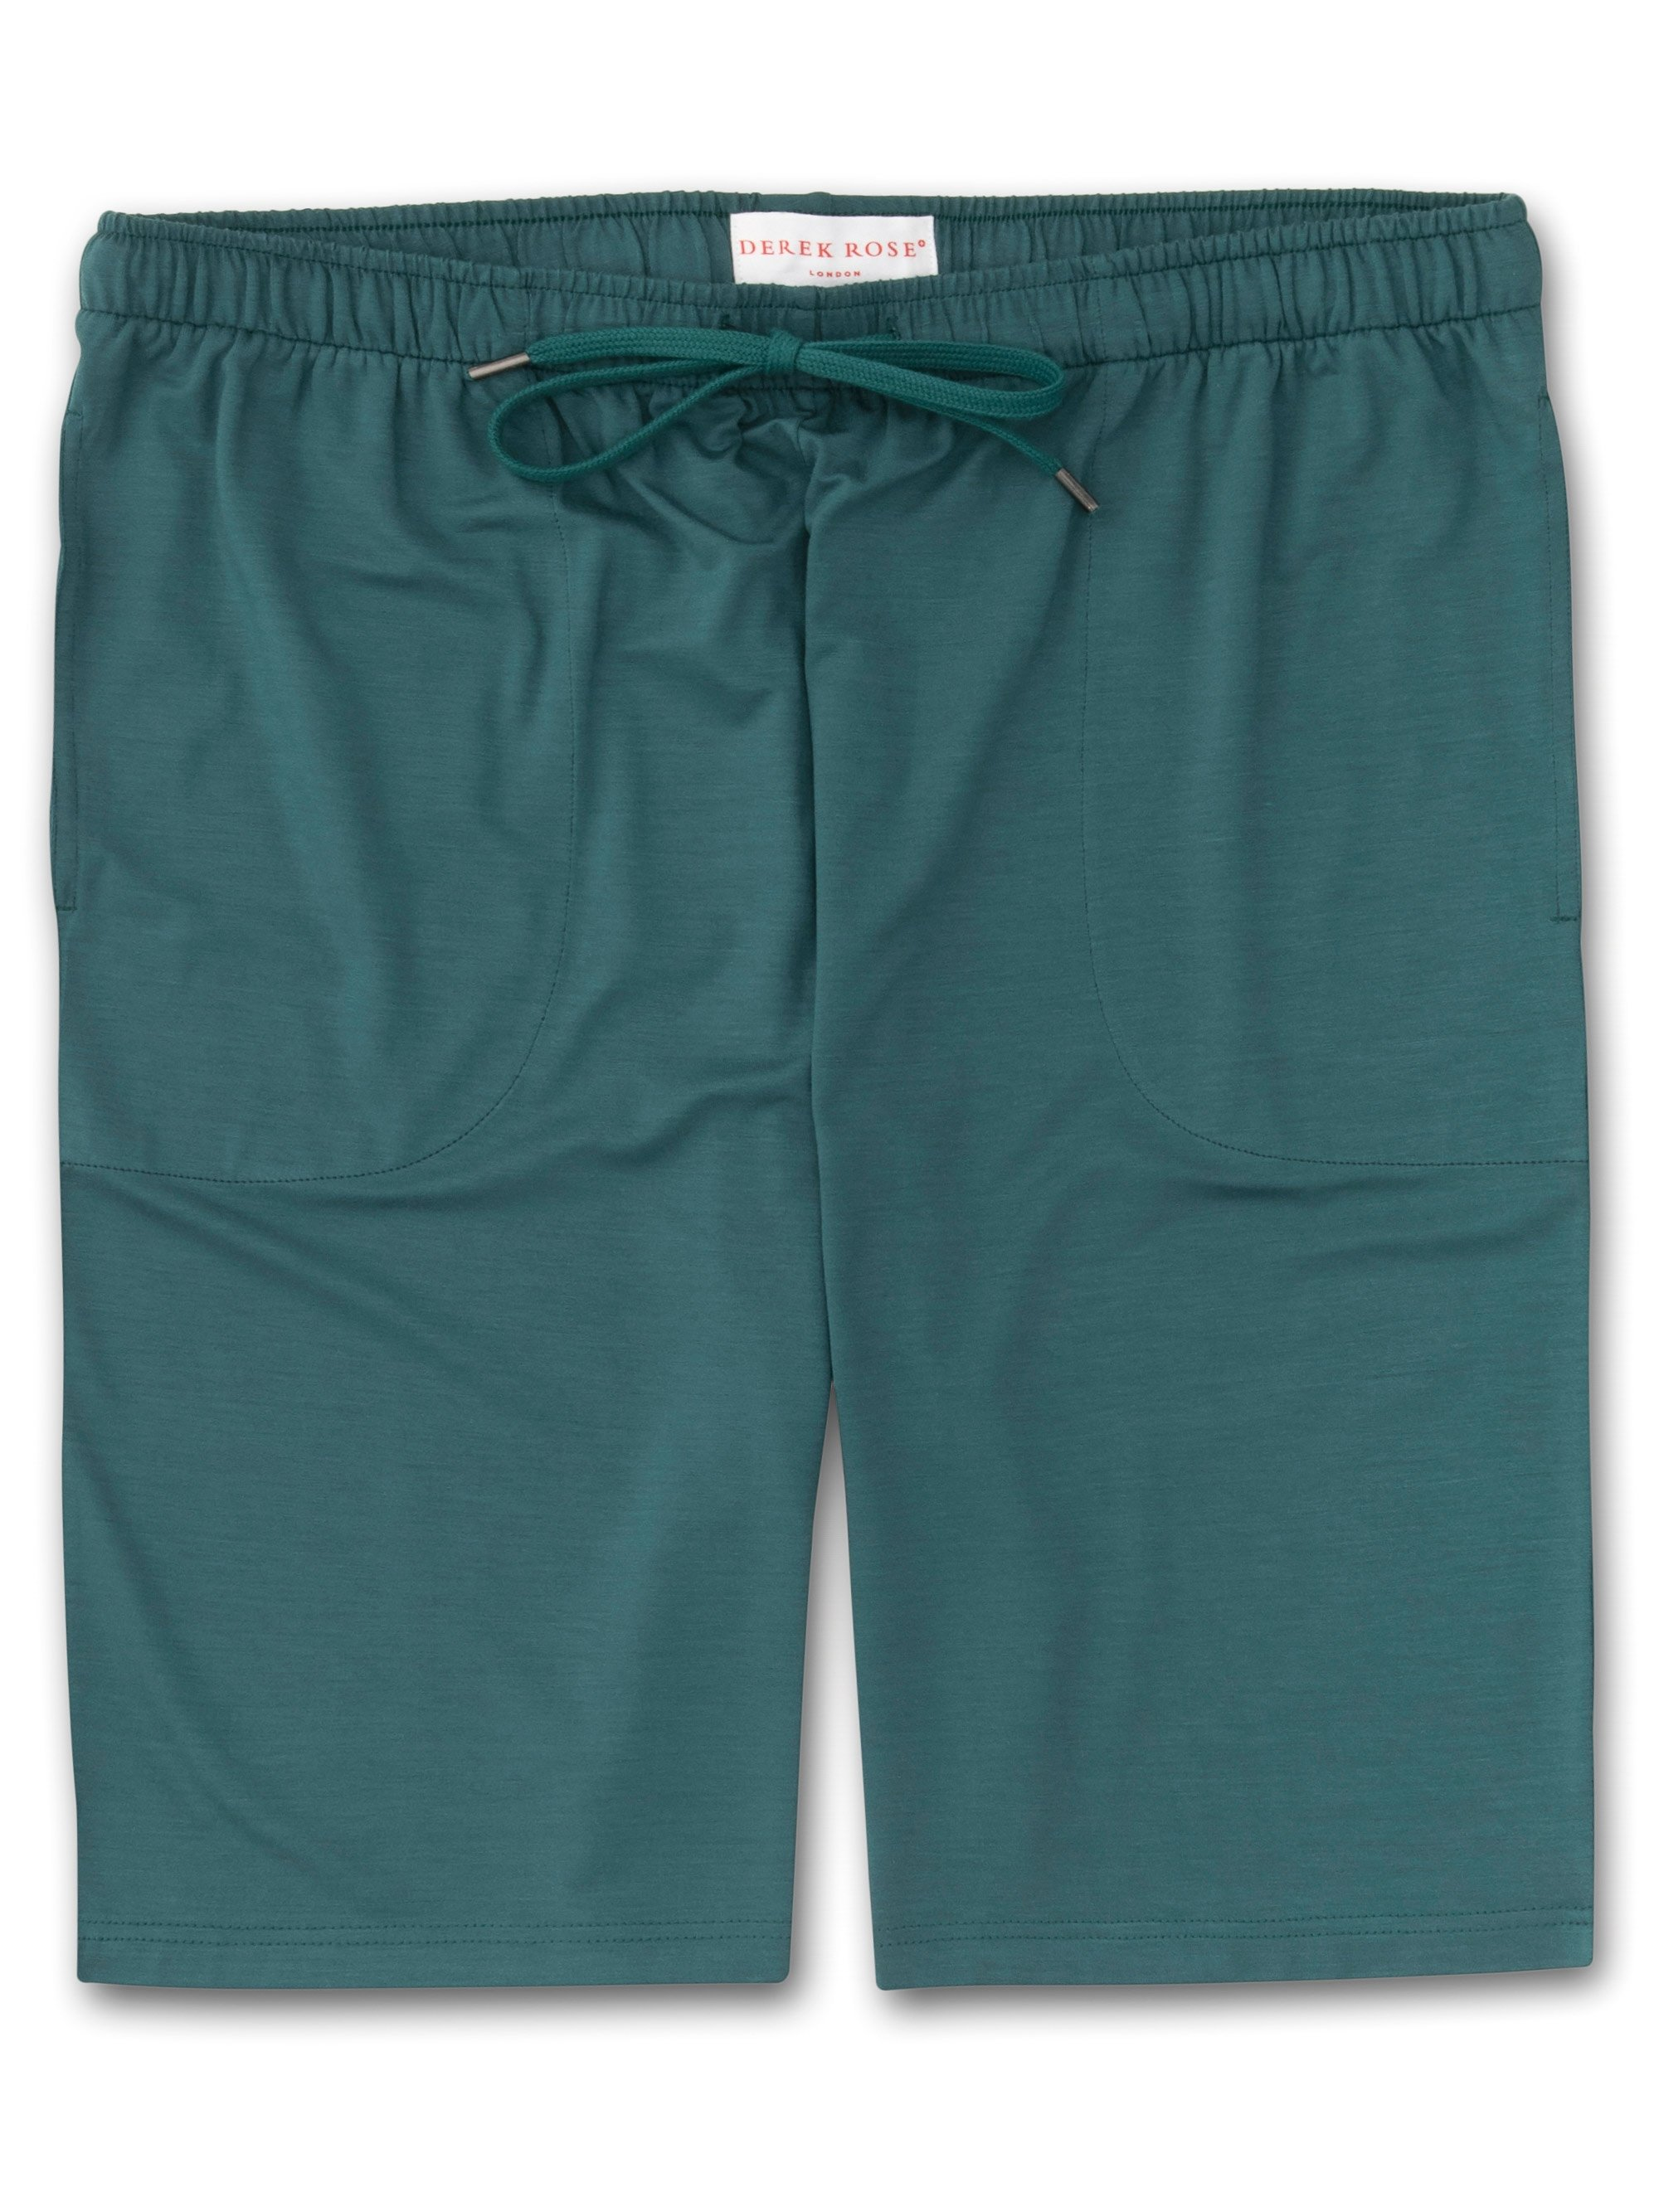 Men's Jersey Shorts Basel 8 Micro Modal Stretch Green